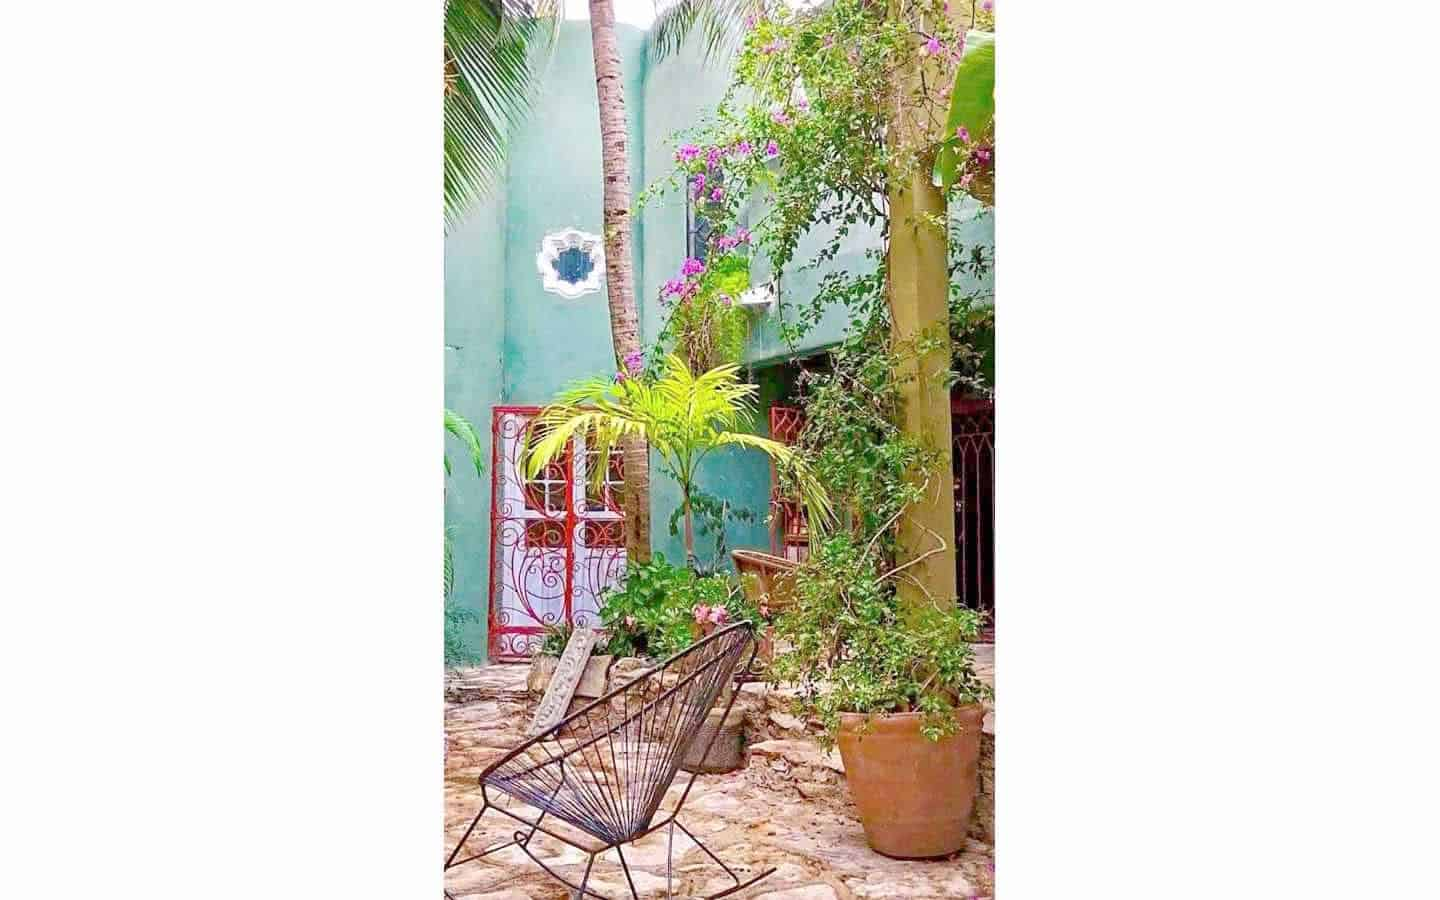 Garden tranquility and color